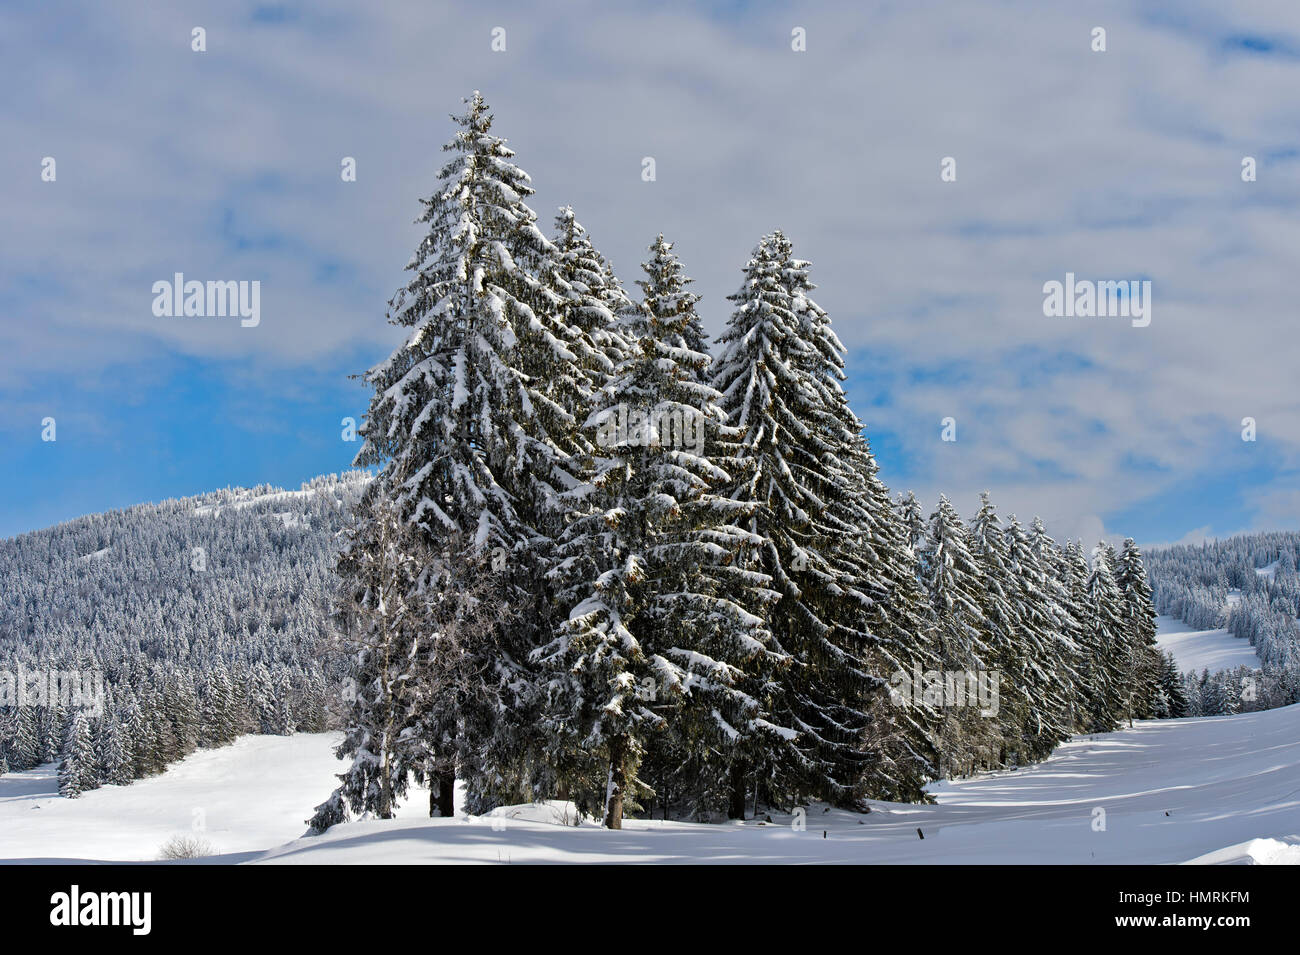 Winter landscape with snow-covered coniferous trees in the Swiss Jura mountain range near Saint-Cergue, Vaud, Switzerland - Stock Image